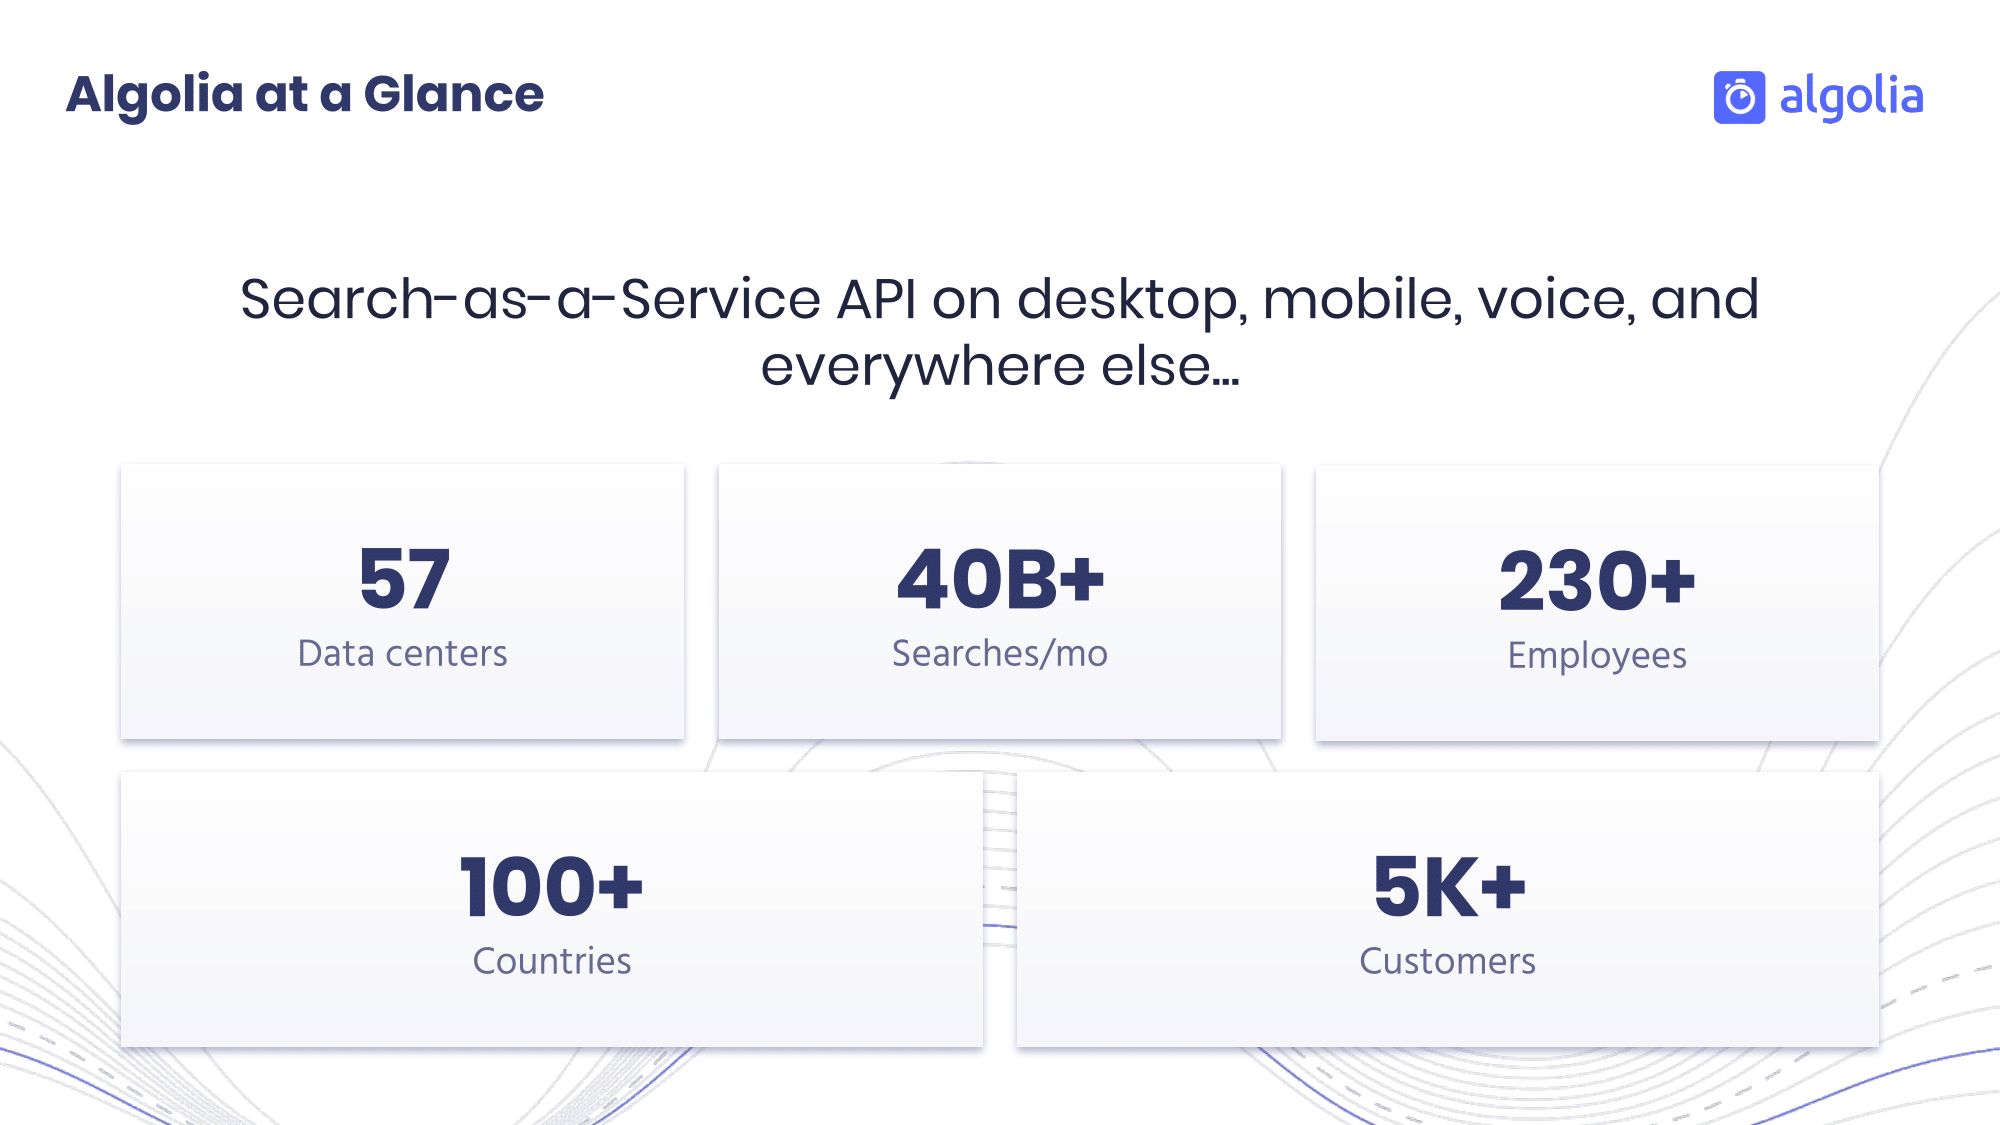 What is Algolia